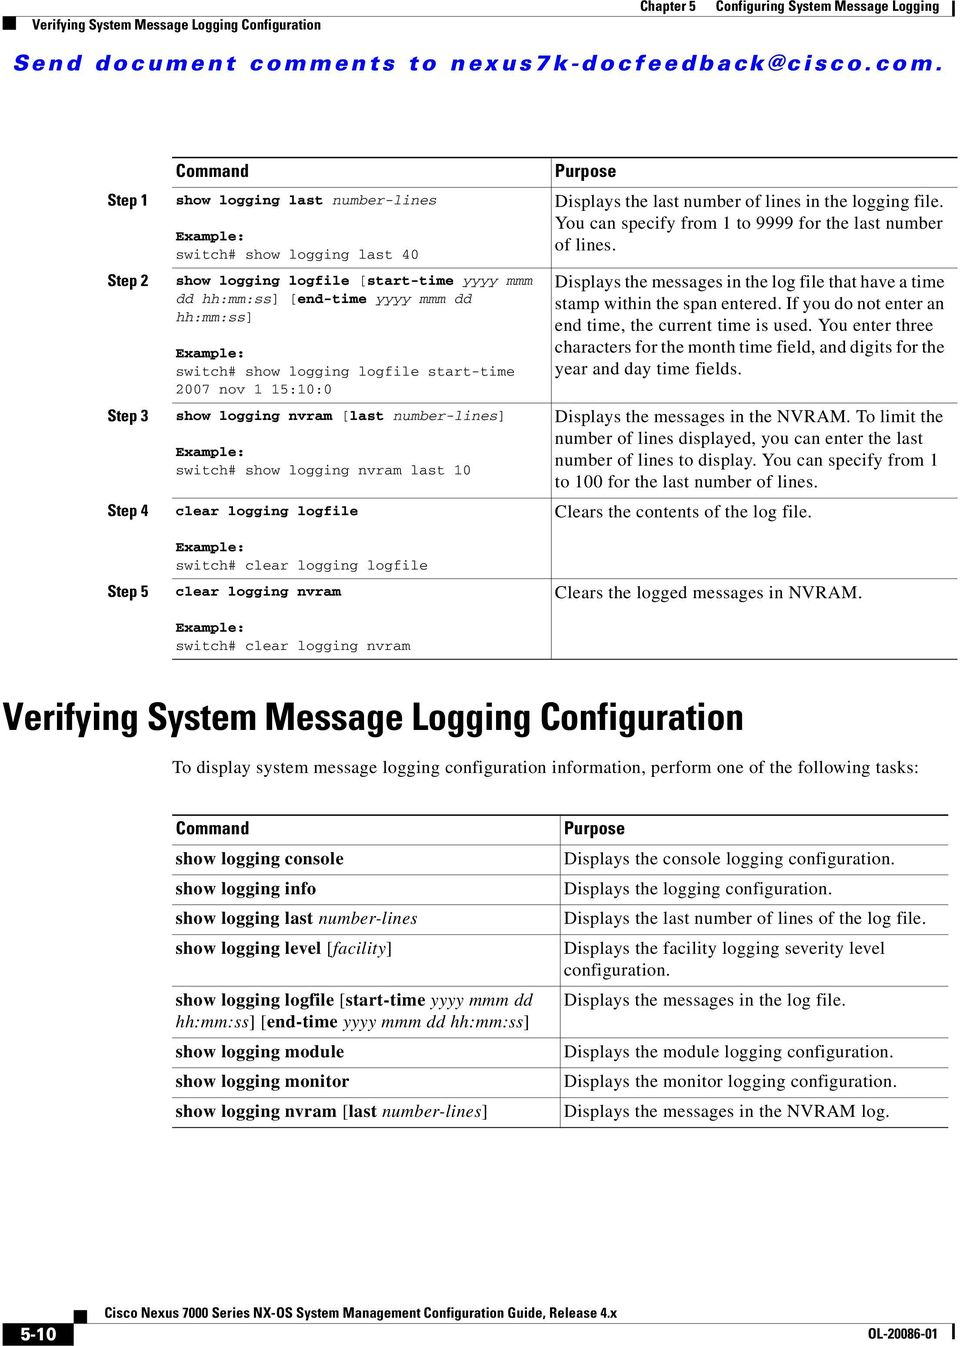 Configuring System Message Logging - PDF